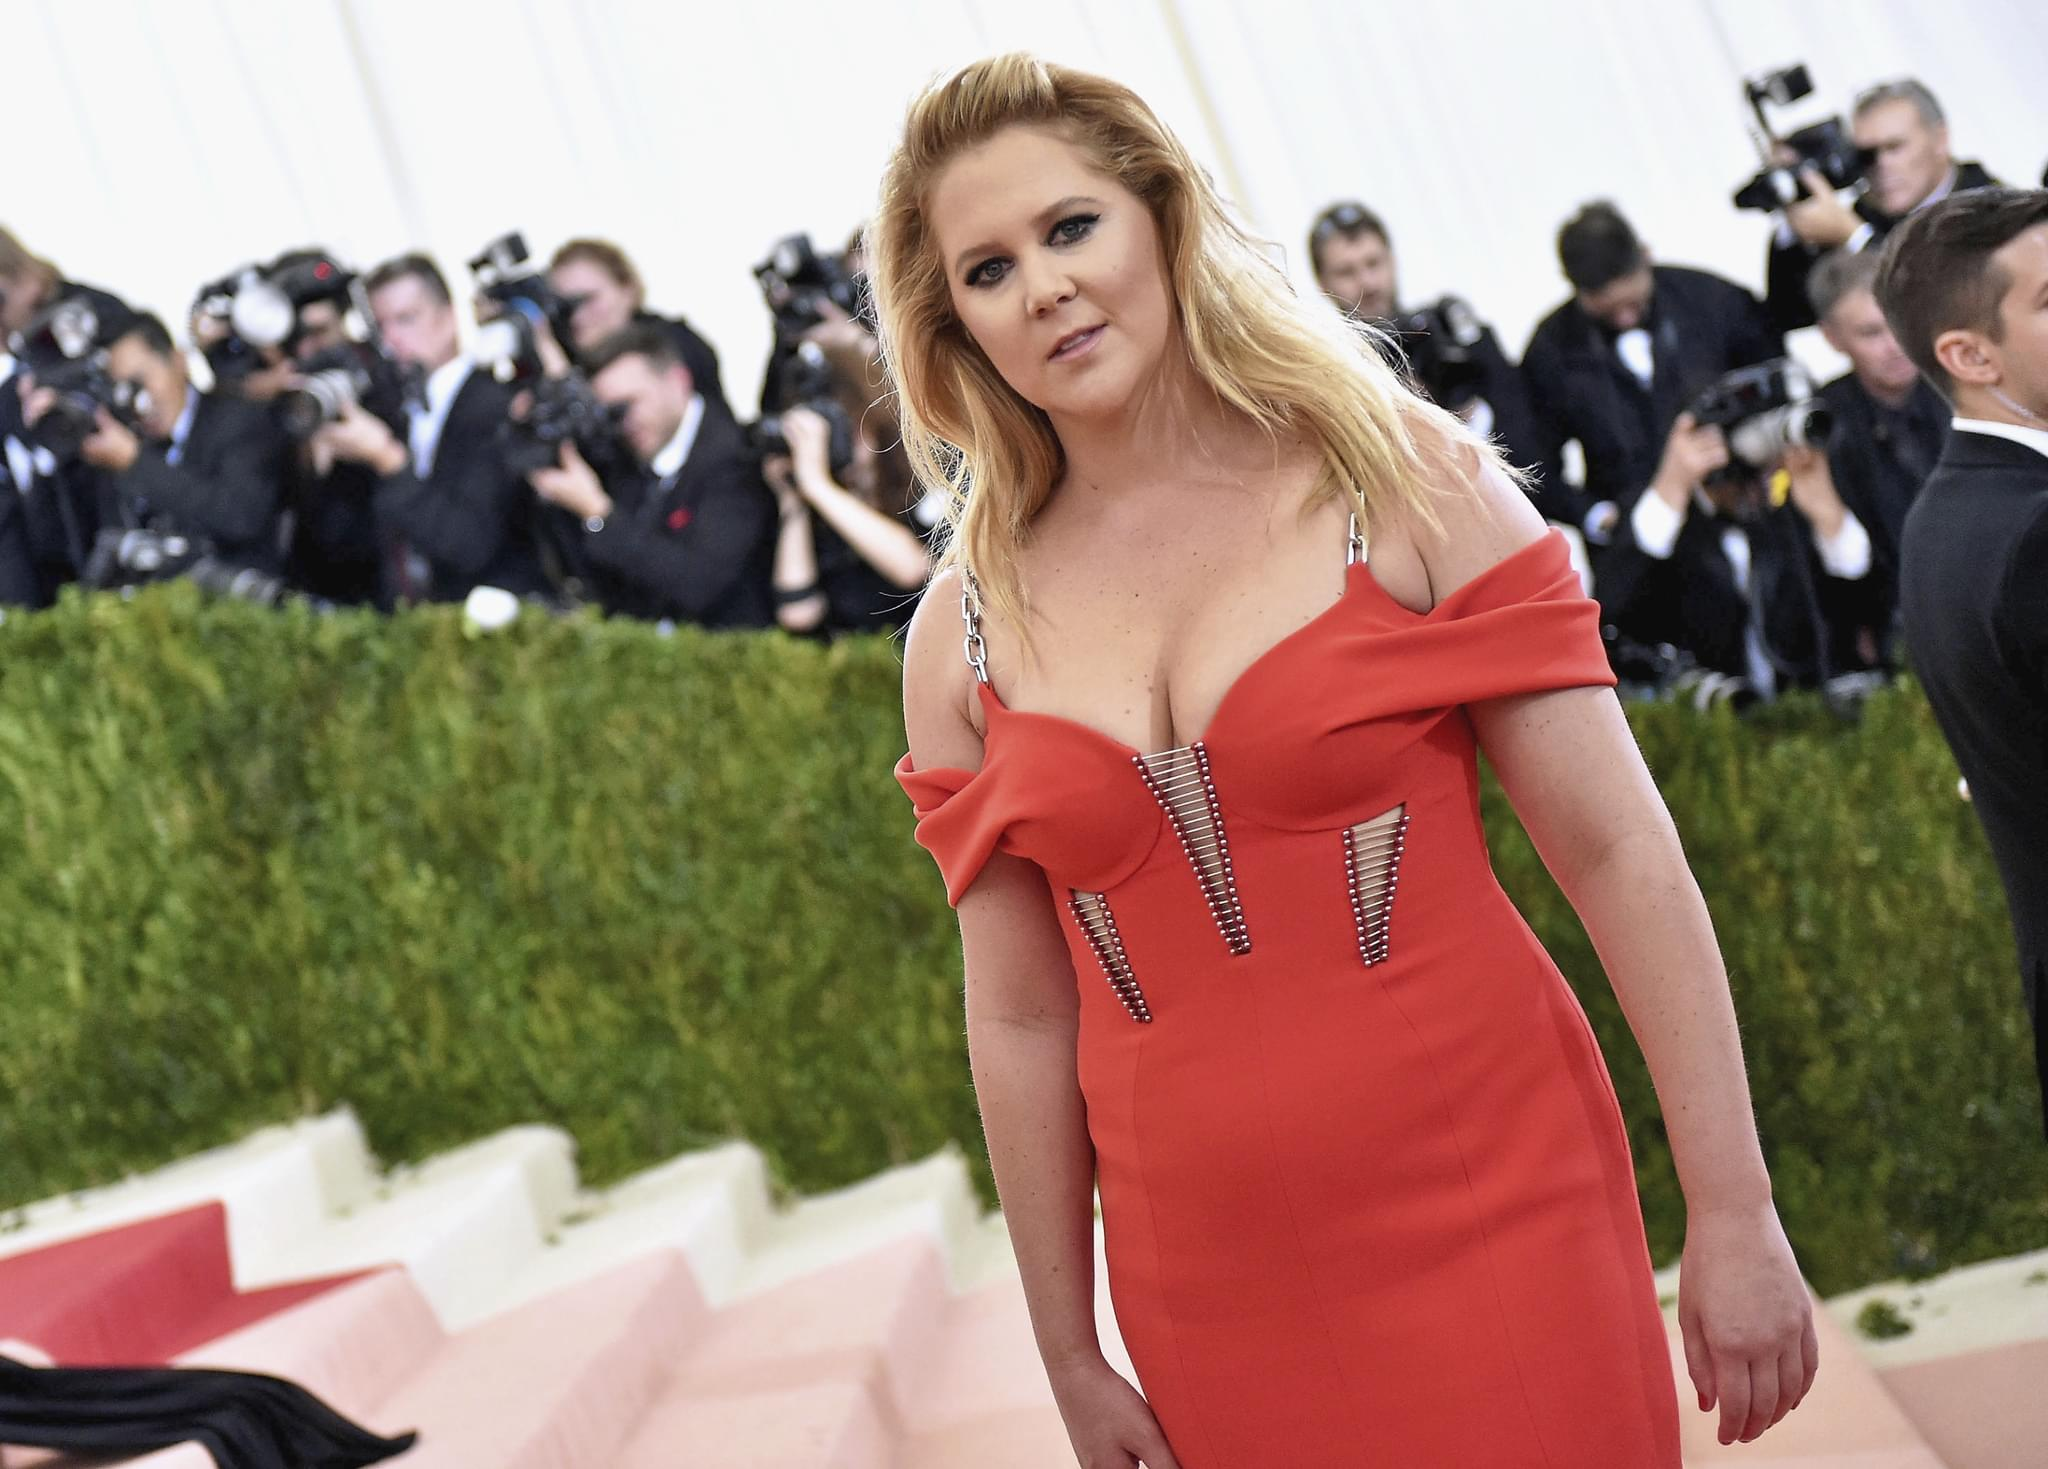 AMY SCHUMER's Tip for the Beach if You Don't Have The Body You Want…